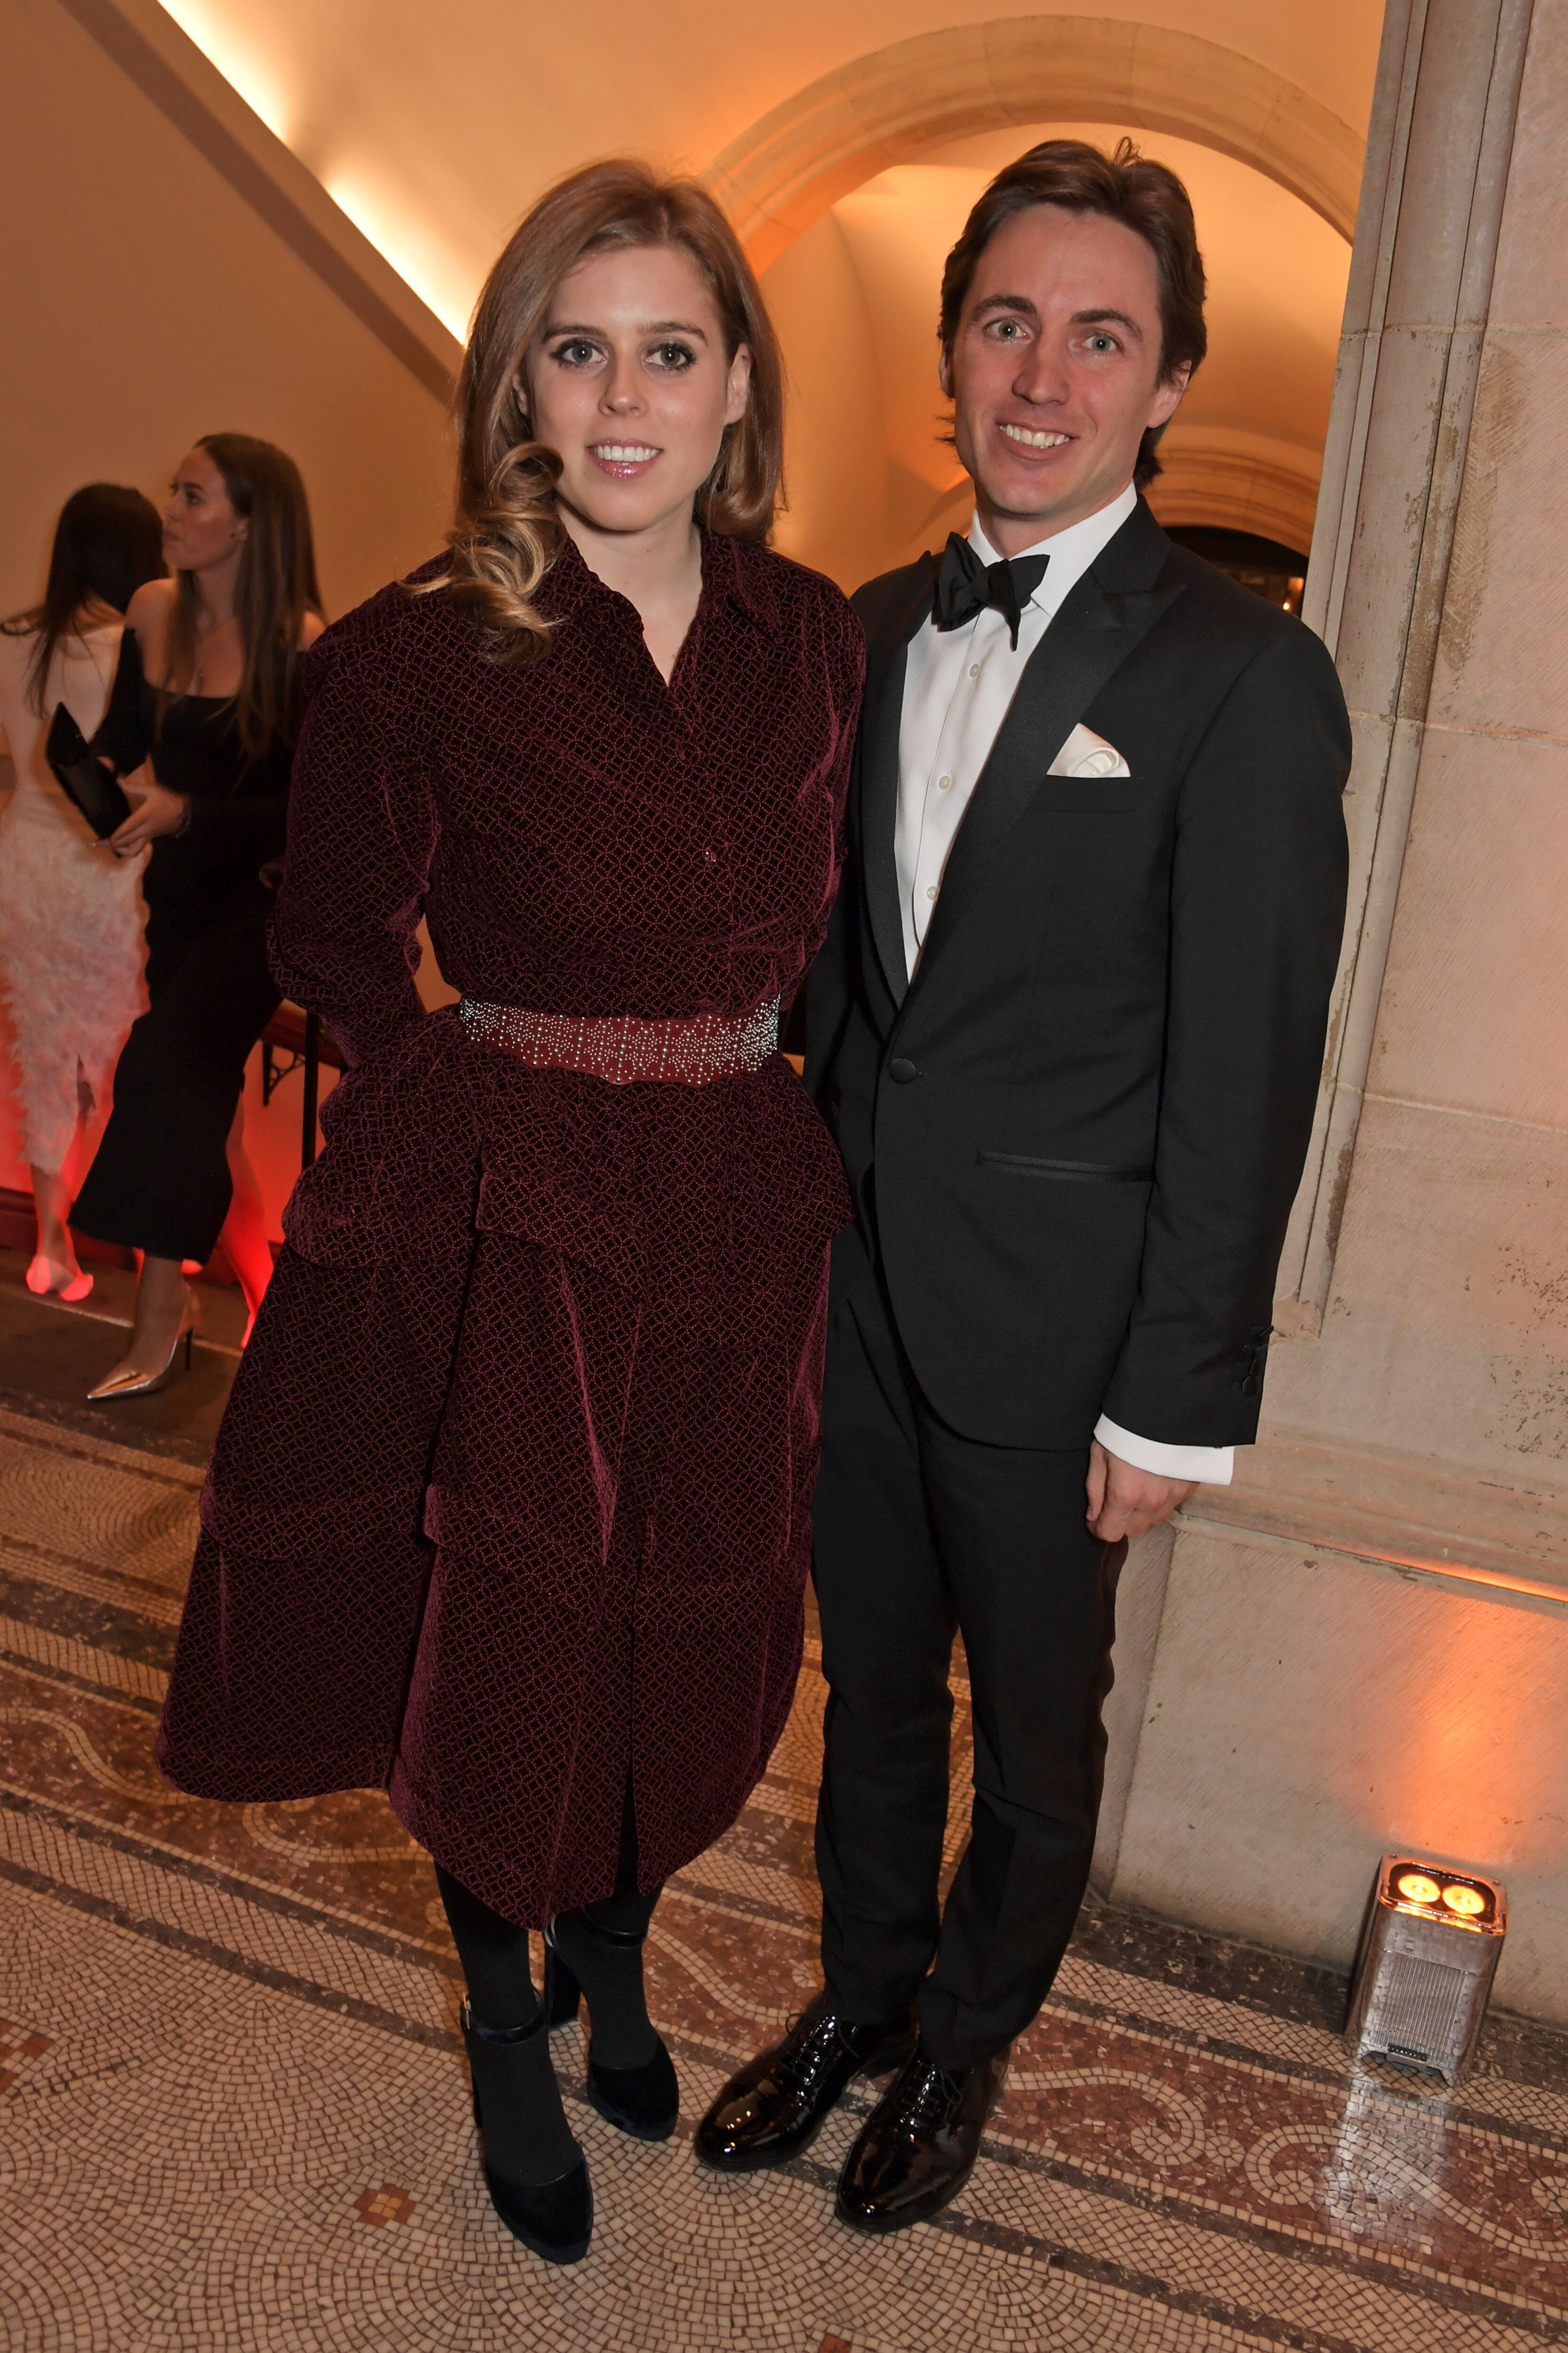 Princess Beatrice of York and Edoardo Mapelli Mozzi attend The Portrait Gala 2019 at the National Portrait Gallery. | Photo: Getty Images